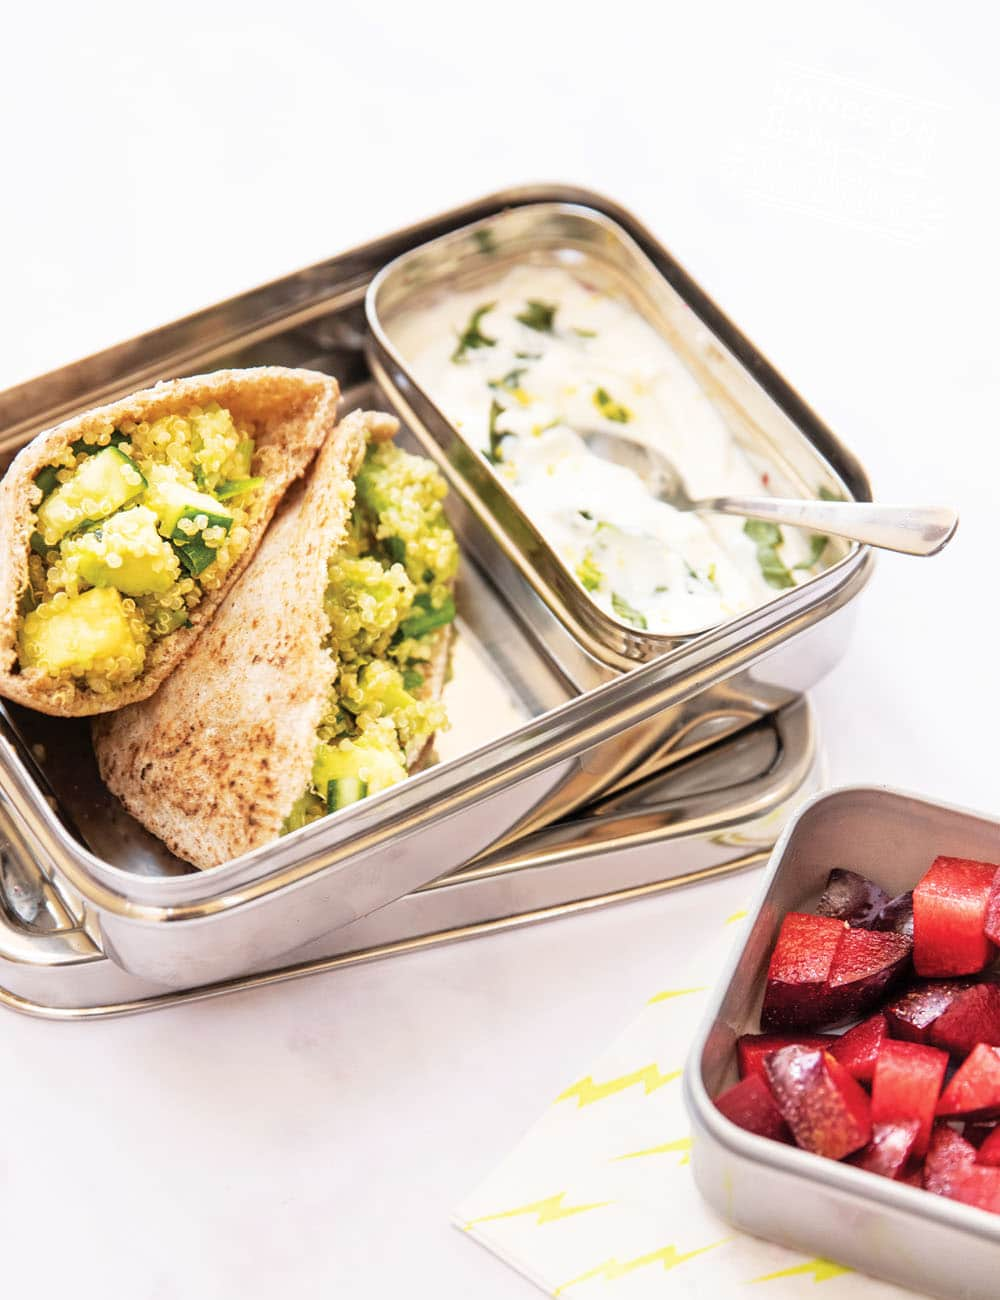 Pitta pockets with quinoa salad and yogurt dip. This is an easy and healthy toddler meal that is full of vegetables. Avocado, cucumber, lemon, and mint flavor this yummy lunch or dinner recipe!